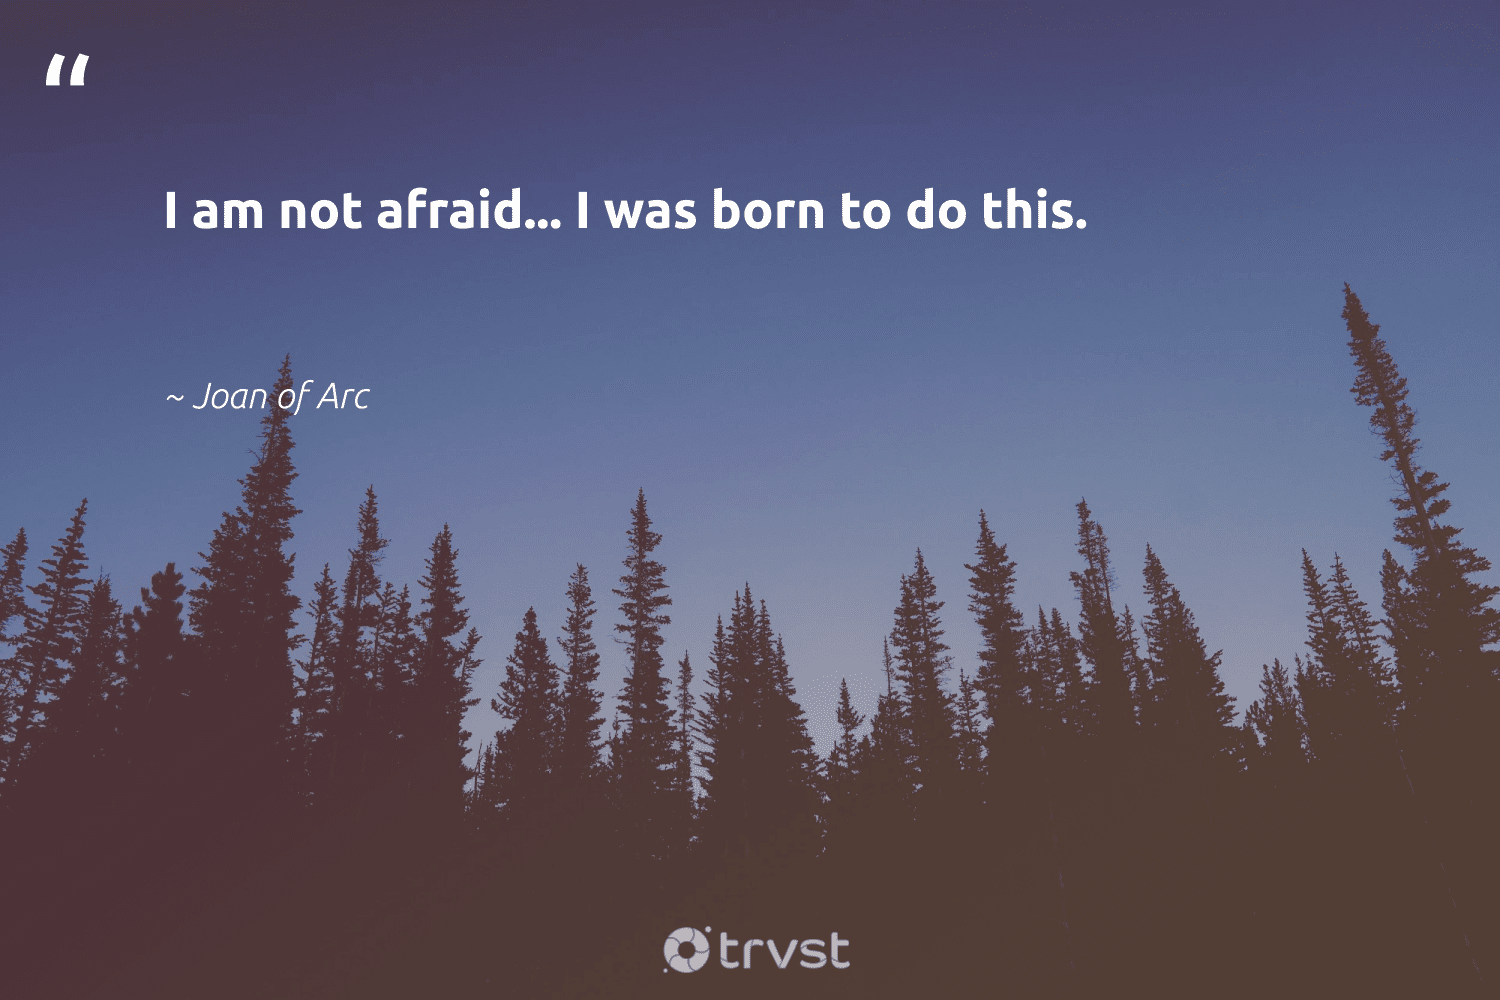 """""""I am not afraid... I was born to do this.""""  - Joan of Arc #trvst #quotes #nevergiveup #impact #begreat #socialimpact #futureofwork #collectiveaction #softskills #bethechange #thinkgreen #takeaction"""